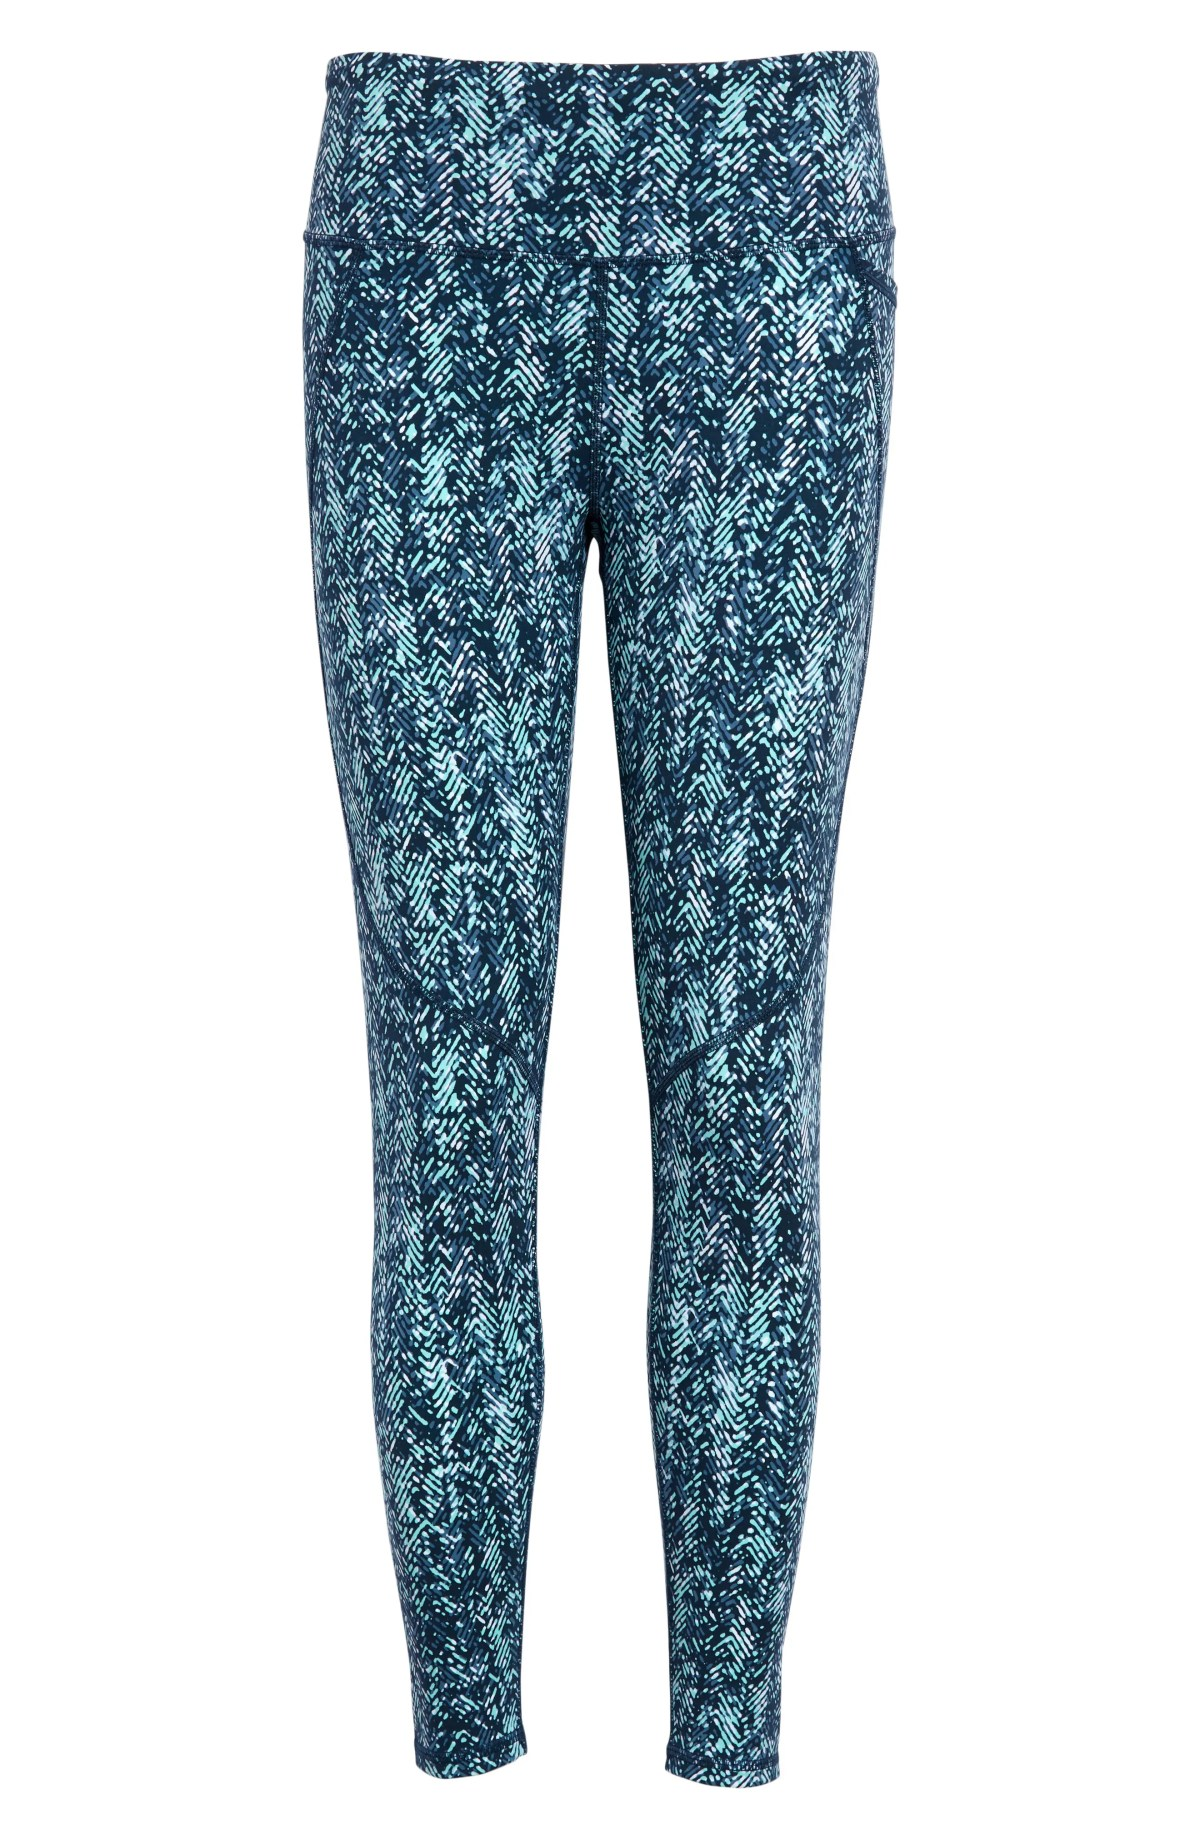 SWEATY BETTY Power Workout 7/8 Leggings, Main, color, BLUE HERRINGBONE